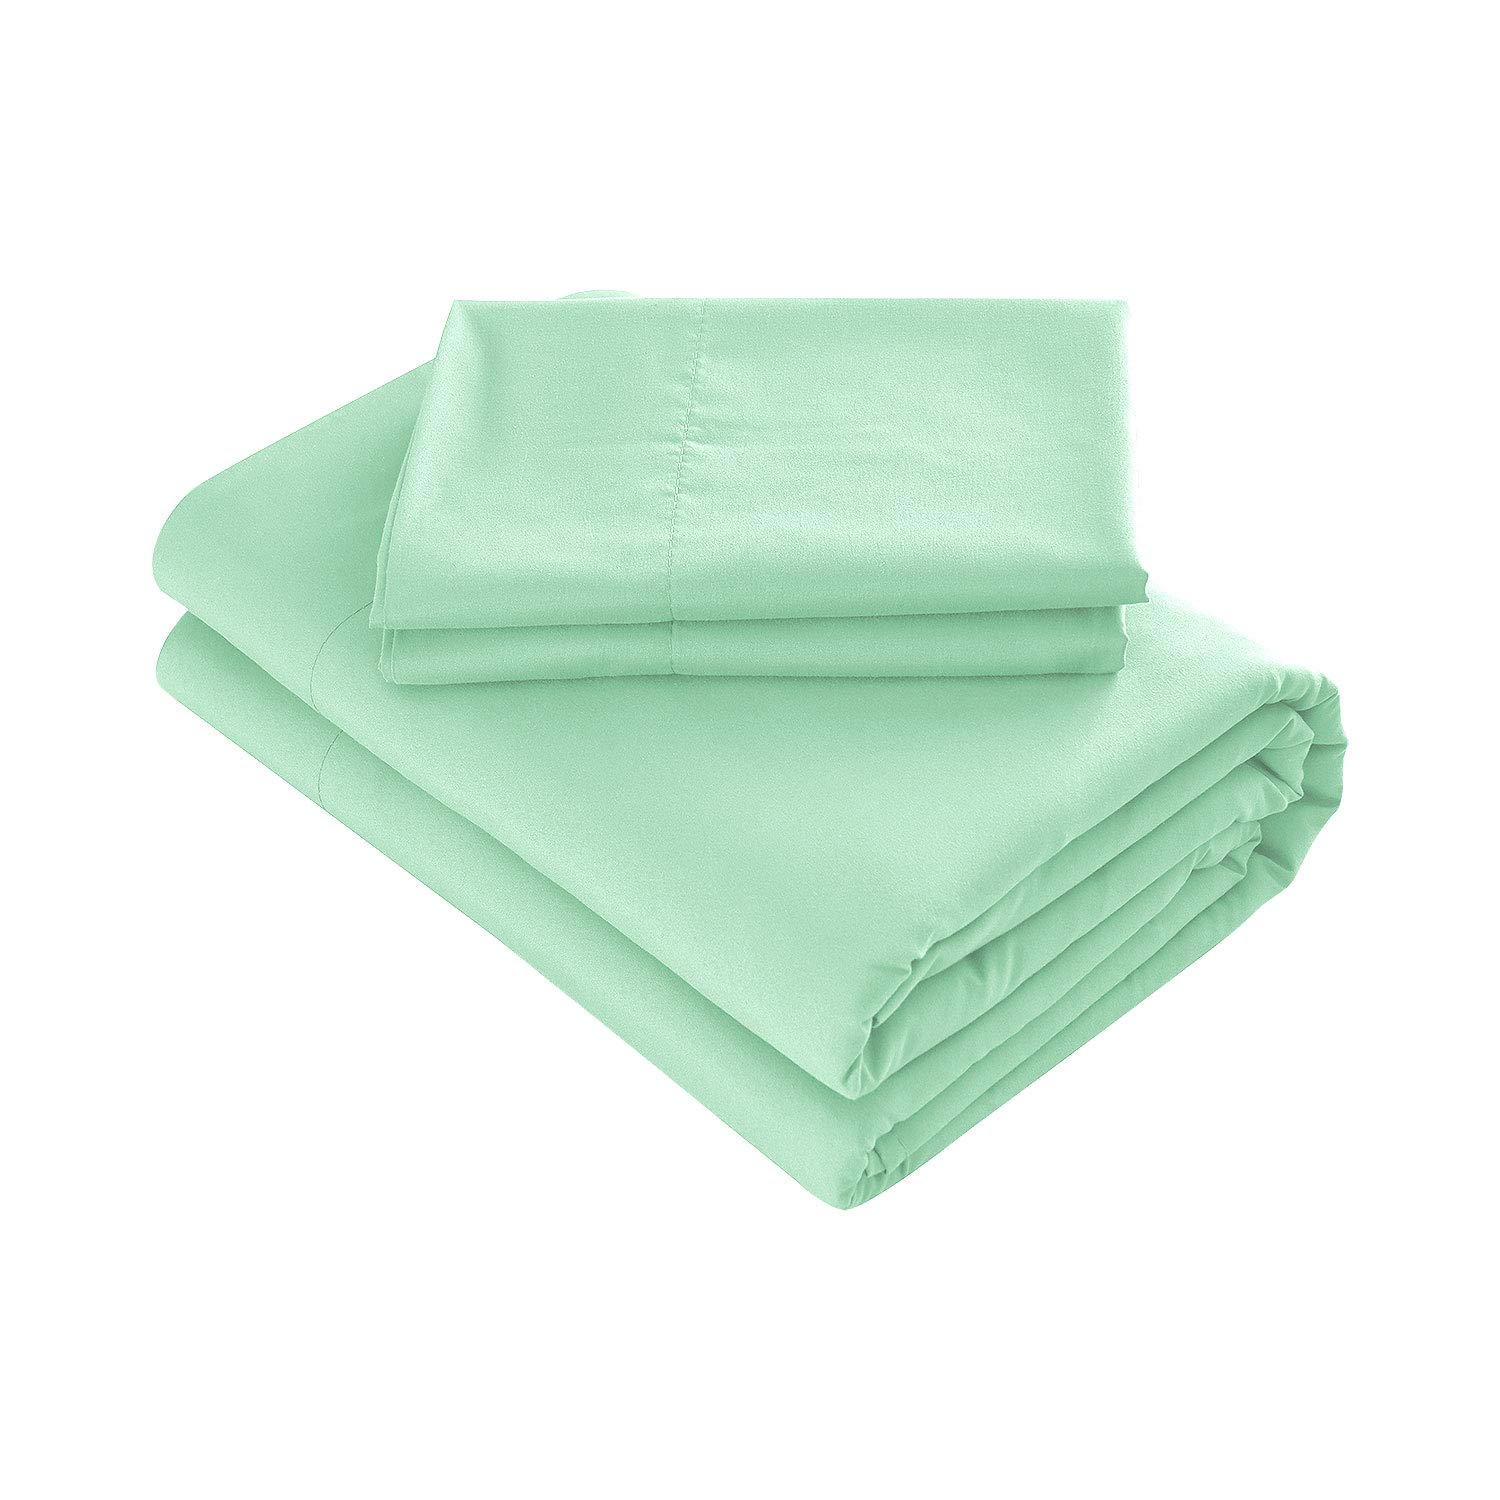 Prime Bedding Bed Sheets - 3 Piece Twin Sheets, Deep Pocket Fitted Sheet, Flat Sheet, Pillow Case - Mint